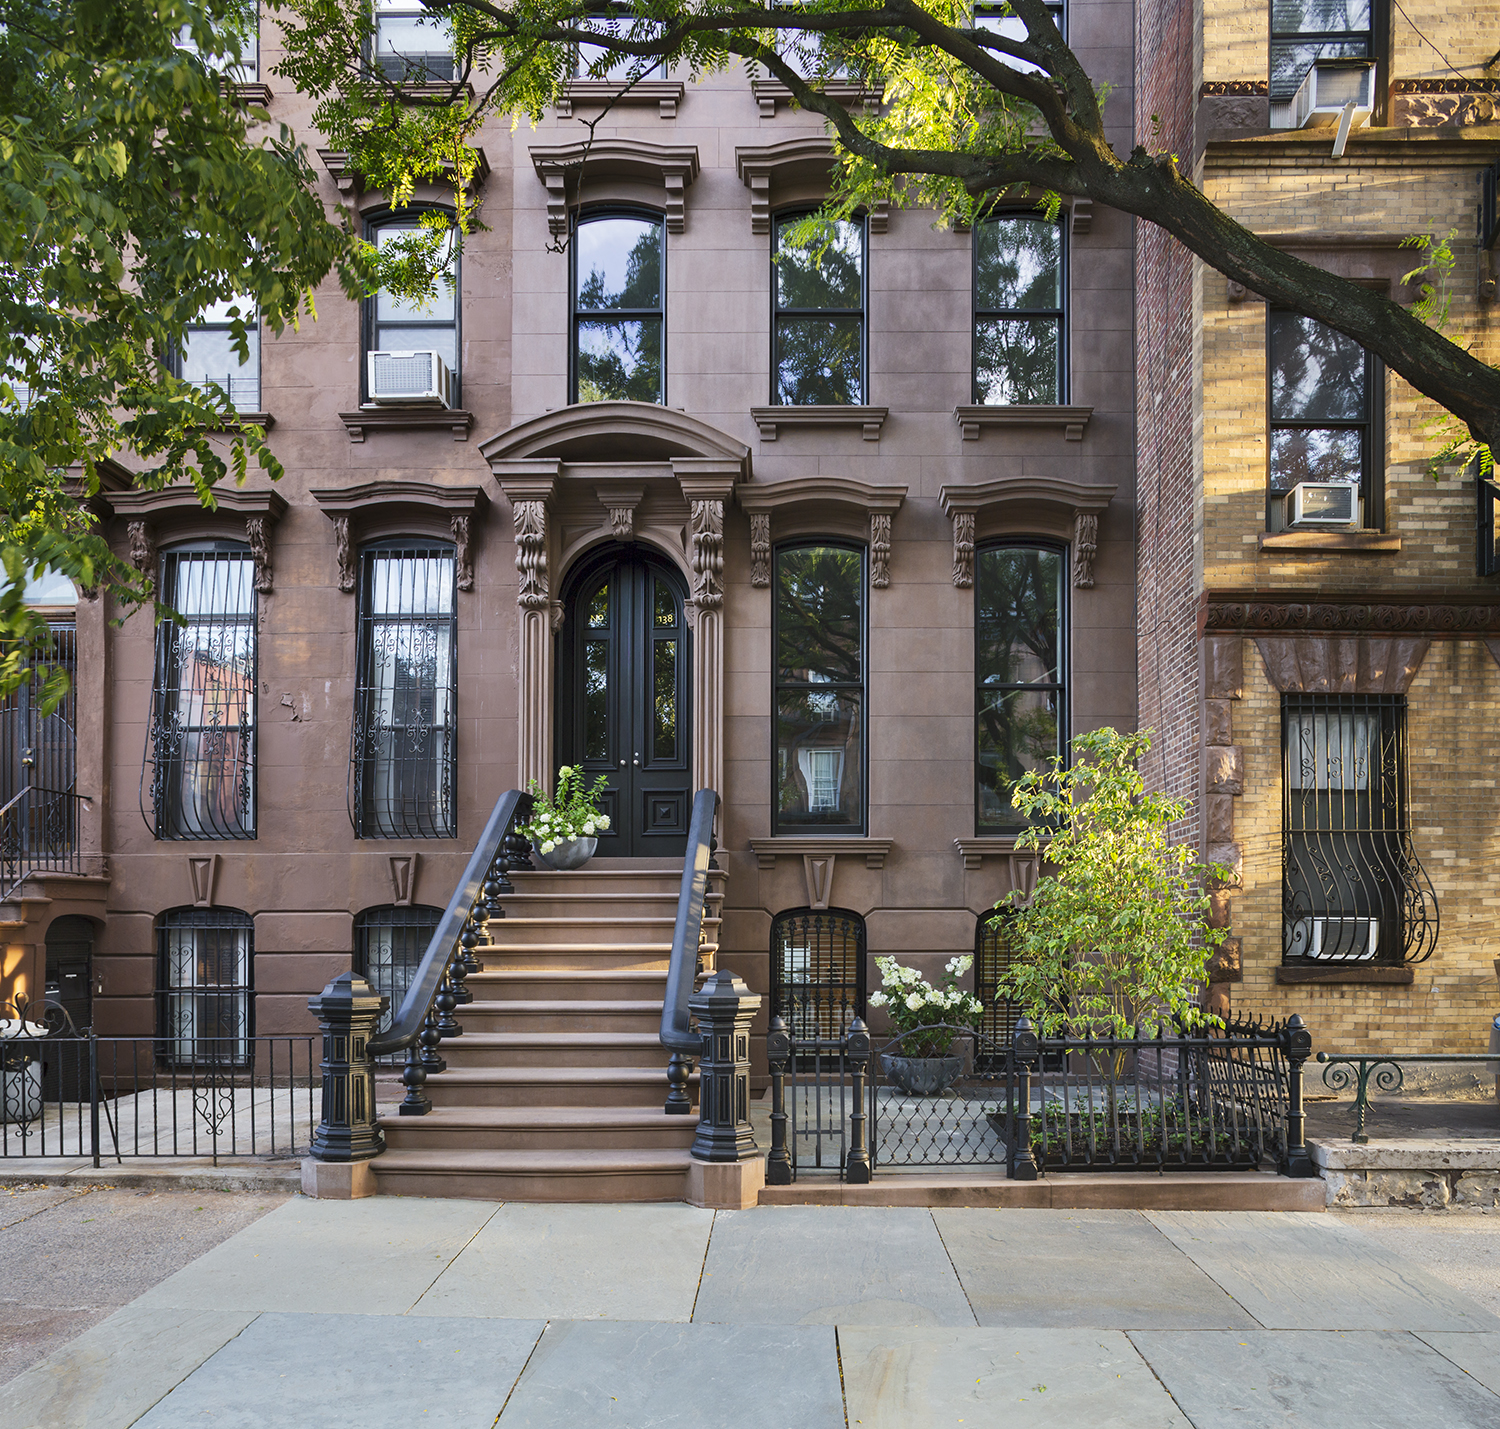 Part Vii The Brownstone Facade Gets A Facelift Curbed